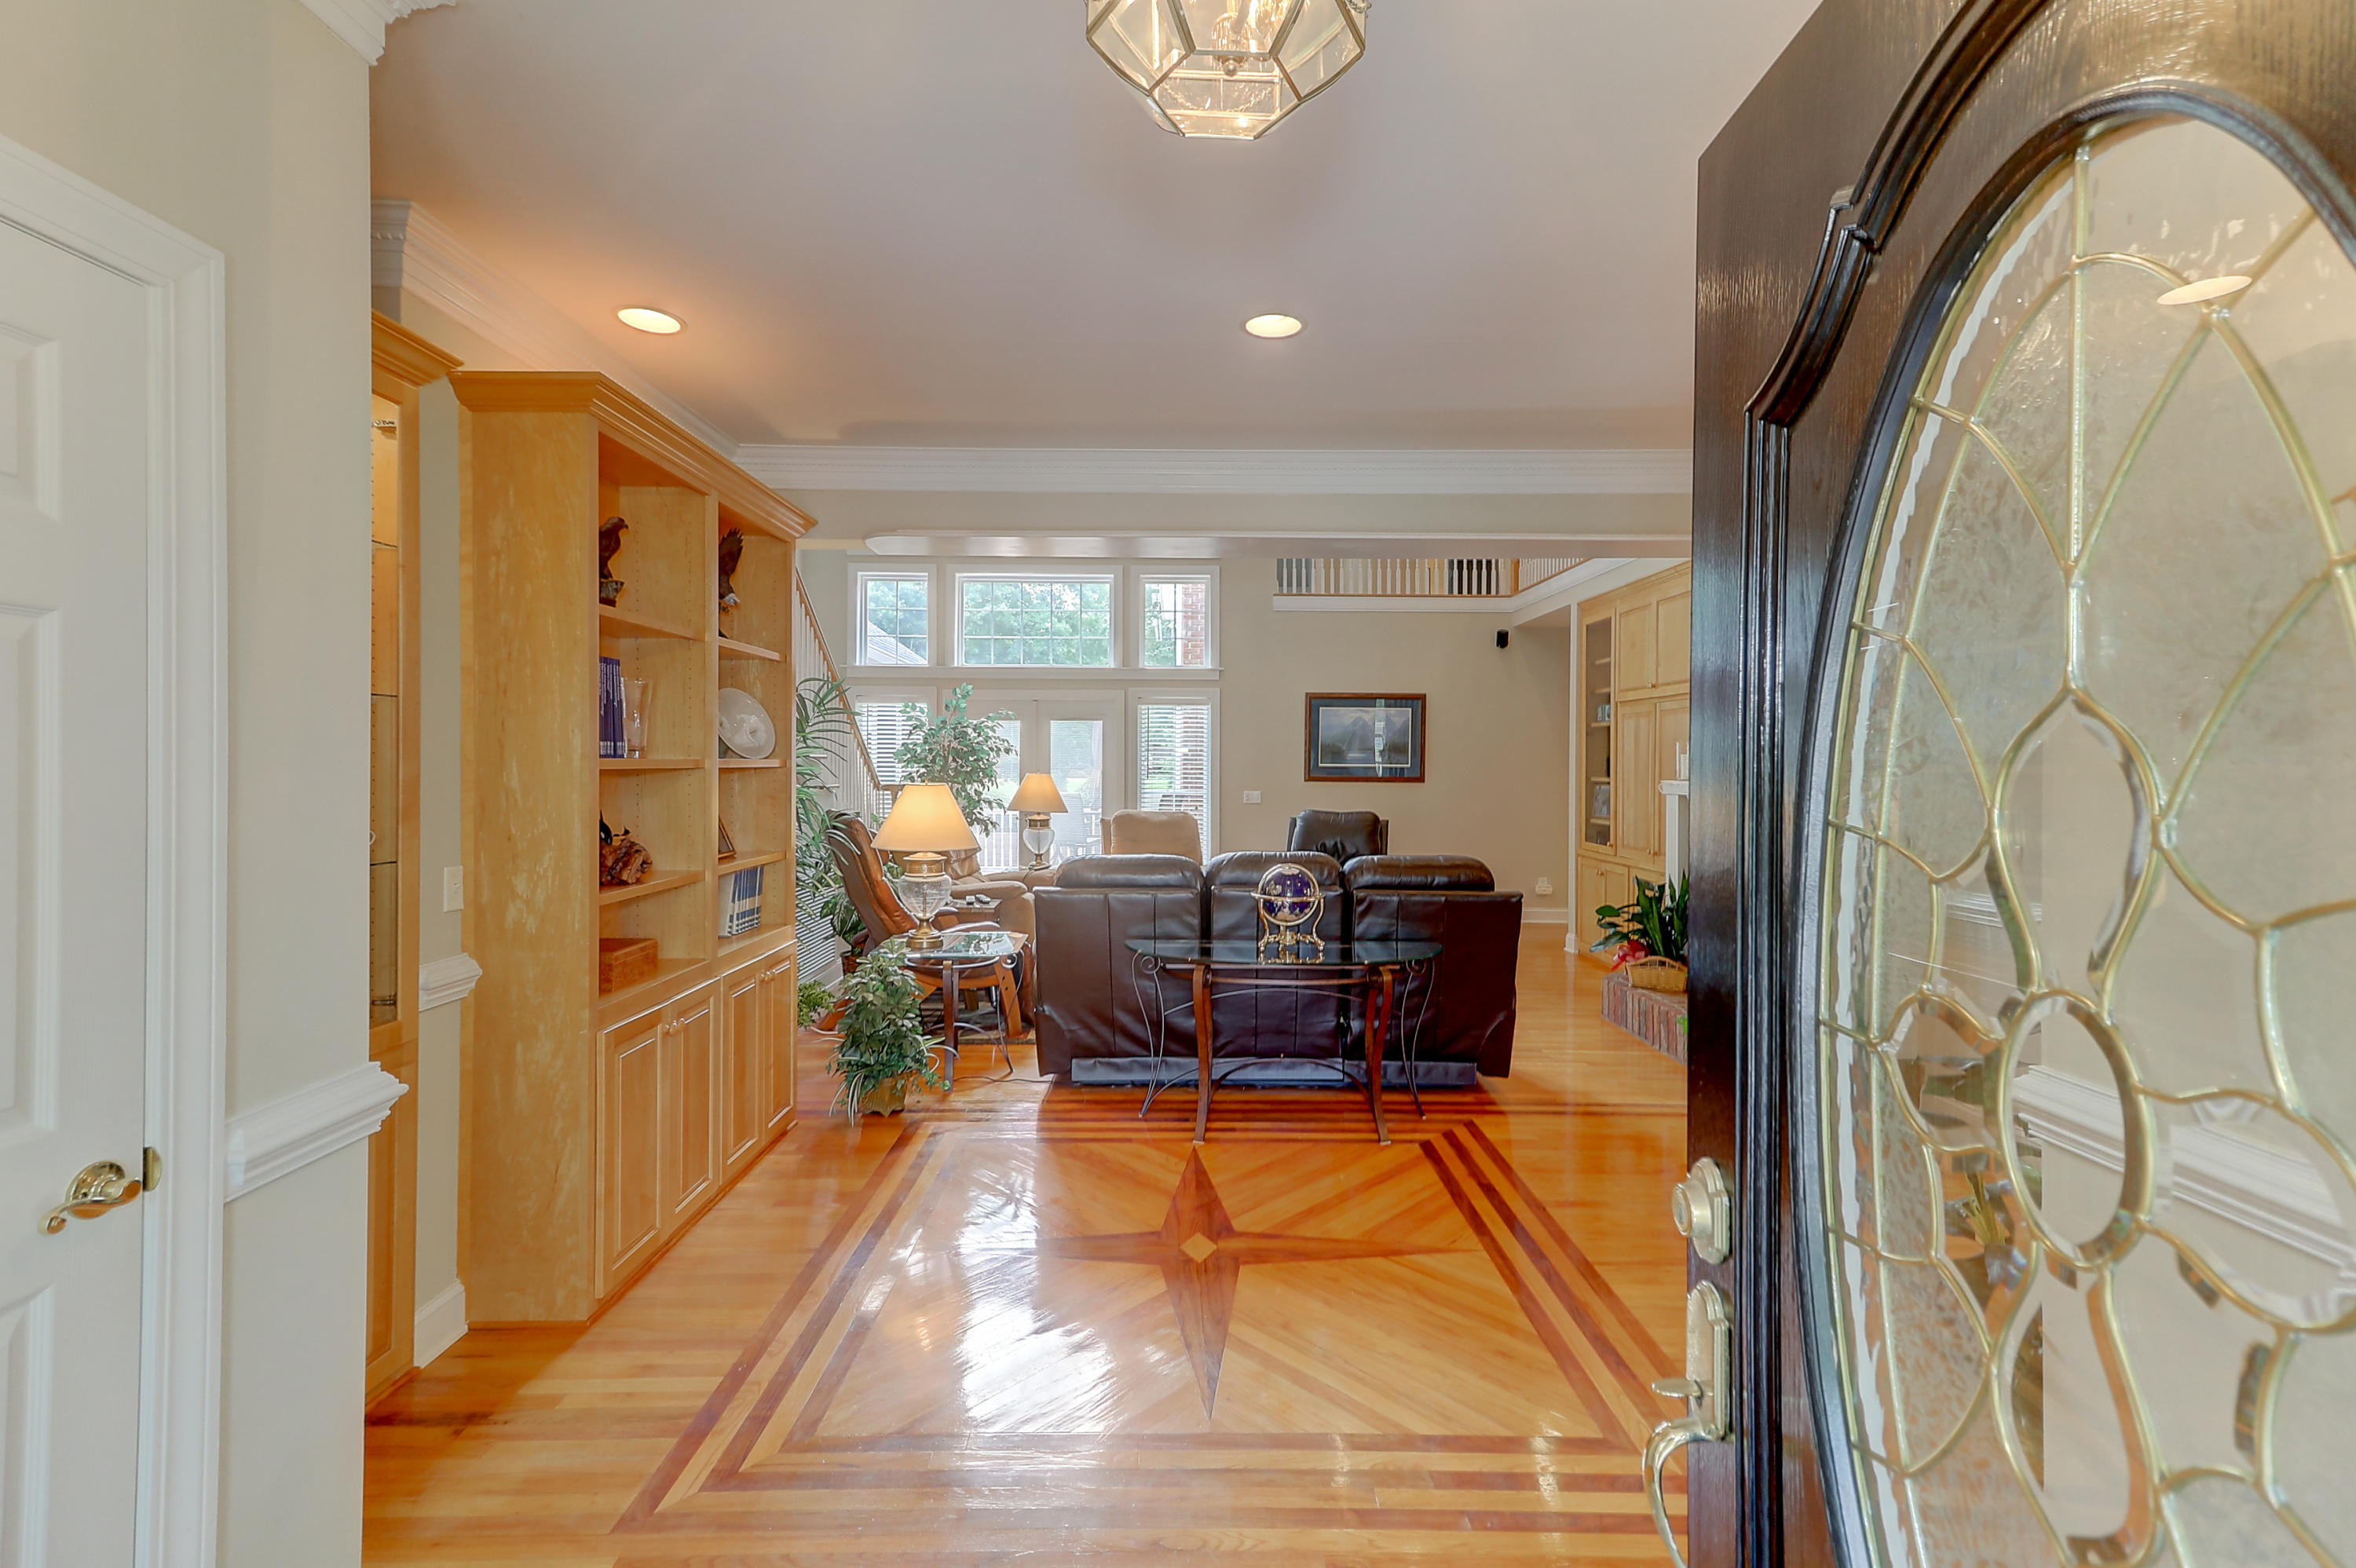 Coosaw Creek Country Club Homes For Sale - 8700 Fairway Woods, North Charleston, SC - 71